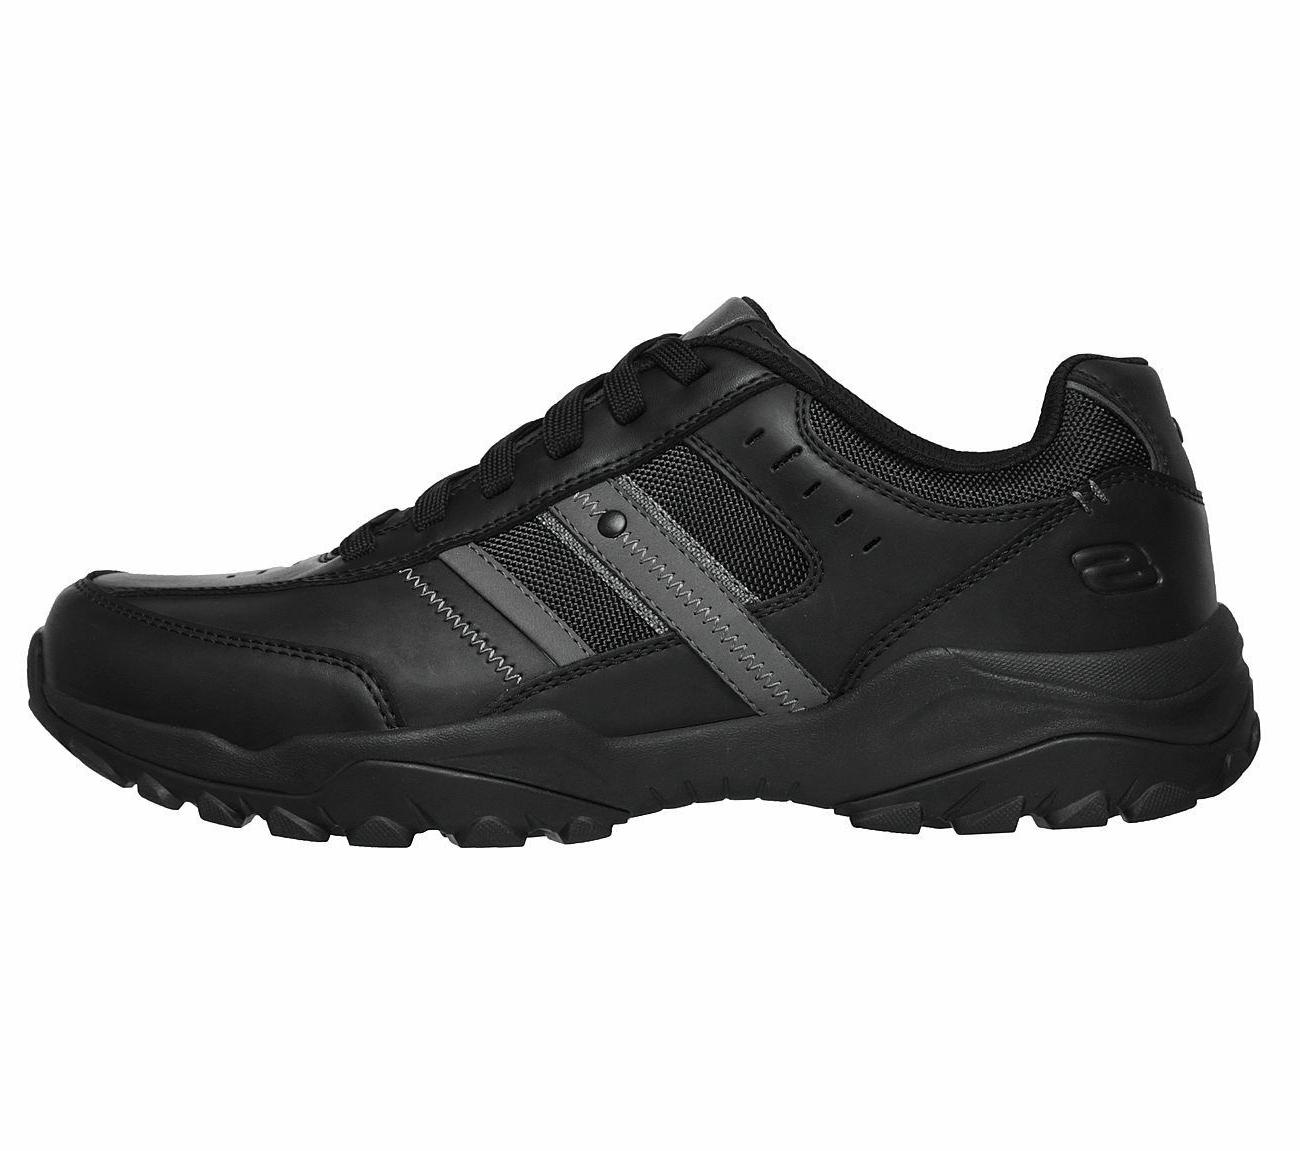 Skechers Black Memory Sporty Comfort Leather Oxford 66015